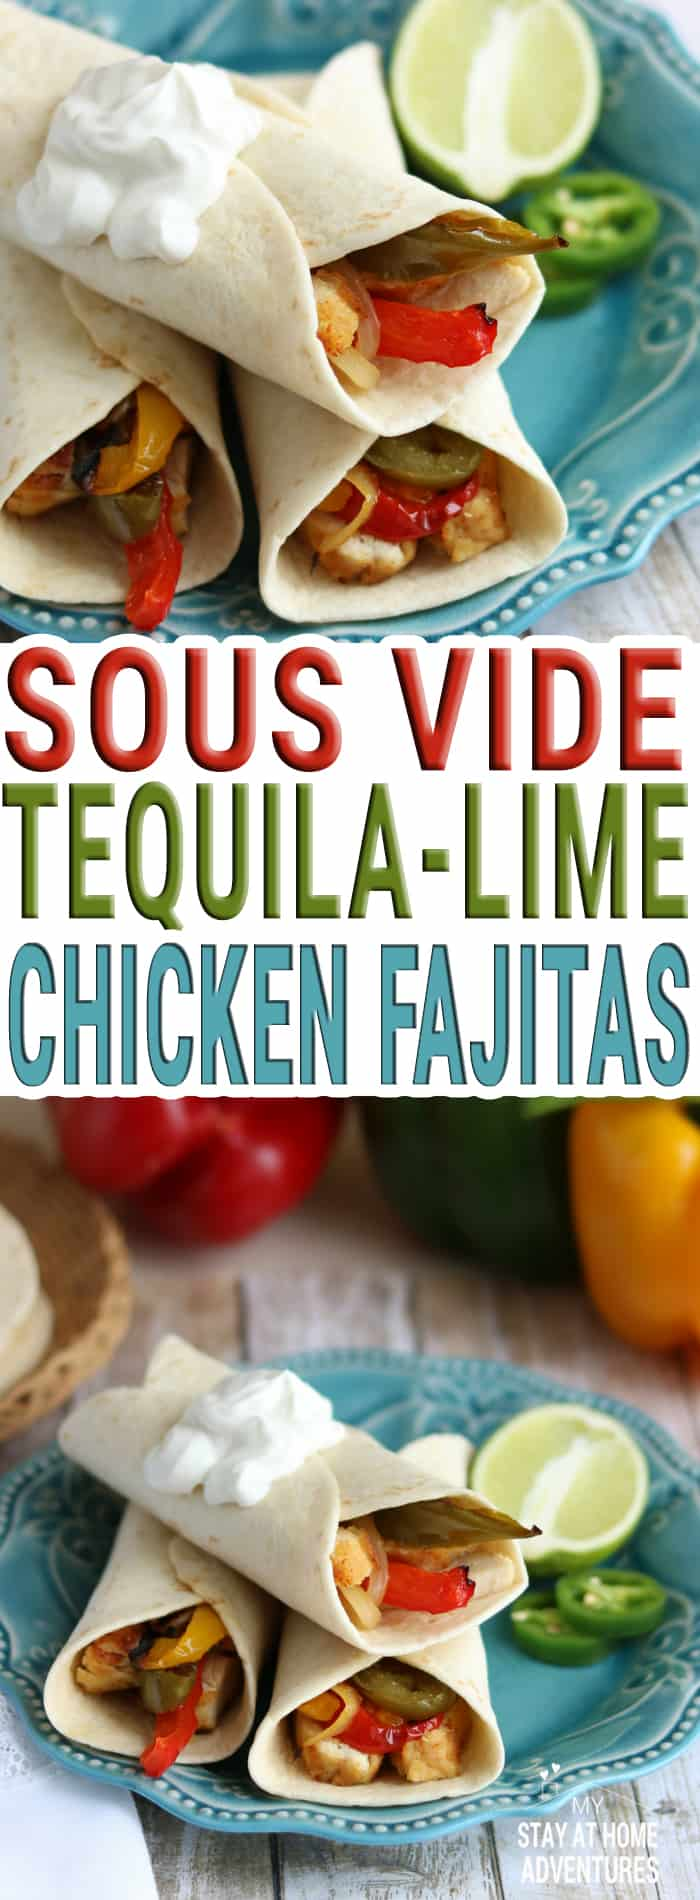 You have to try this Sous Vide Tequila-Lime Chicken Fajitas Recipe and you have to do it today. Learn how to create the perfect tequila-lime chicken fajitas using the Sous Vide method anyone can make. Wow your family with this chicken fajitas today